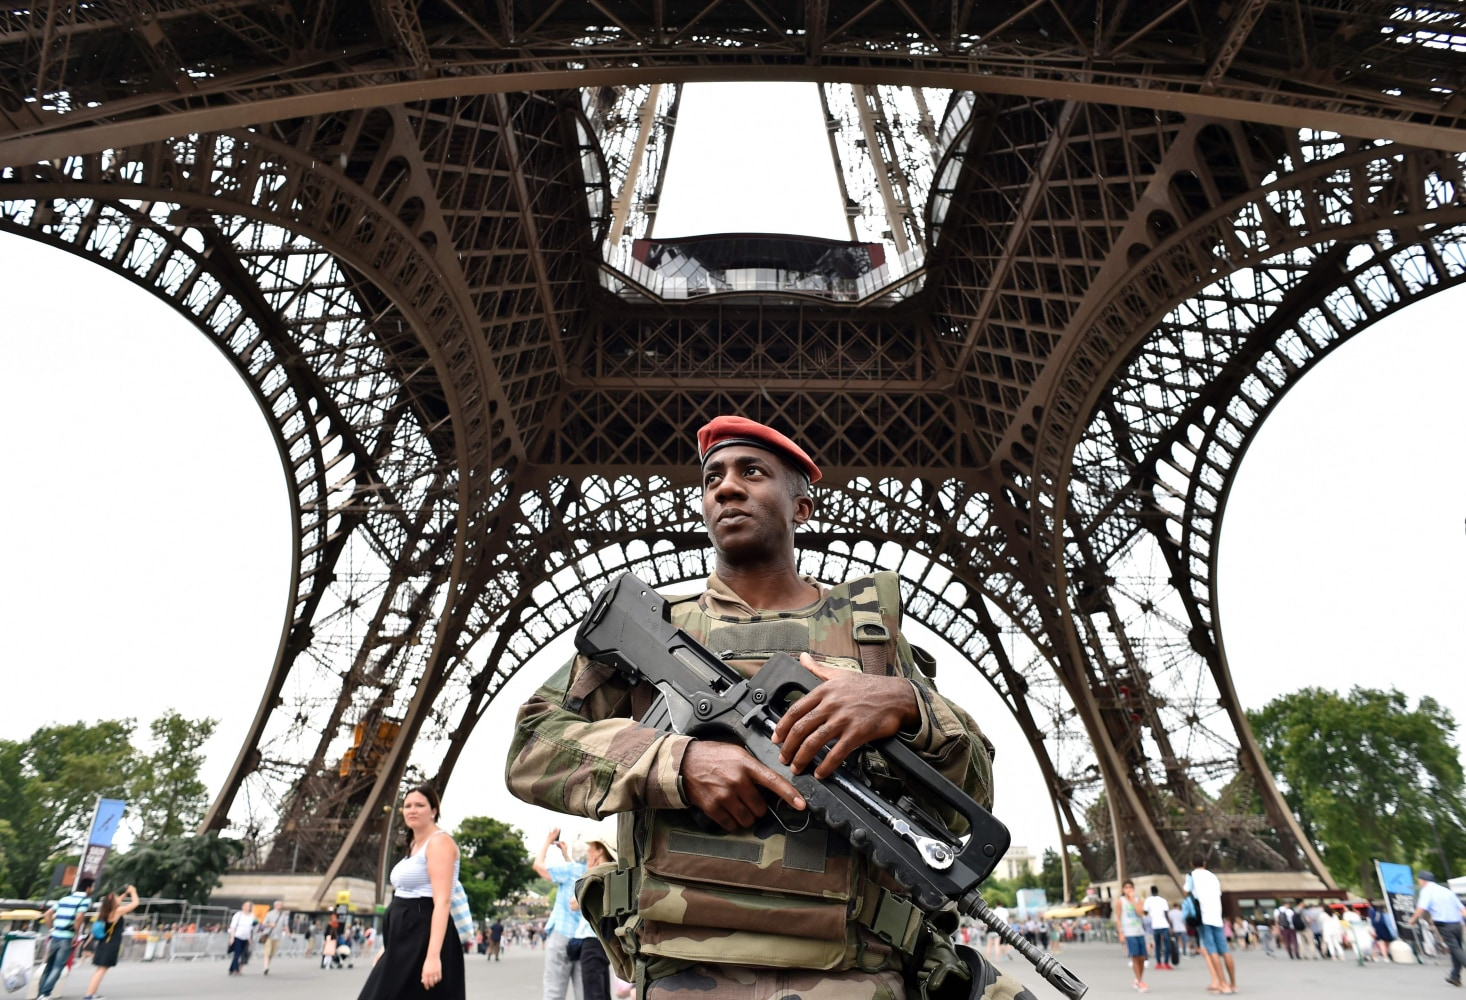 U.S. issues travel alert for 'heightened risk' of attacks in Europe